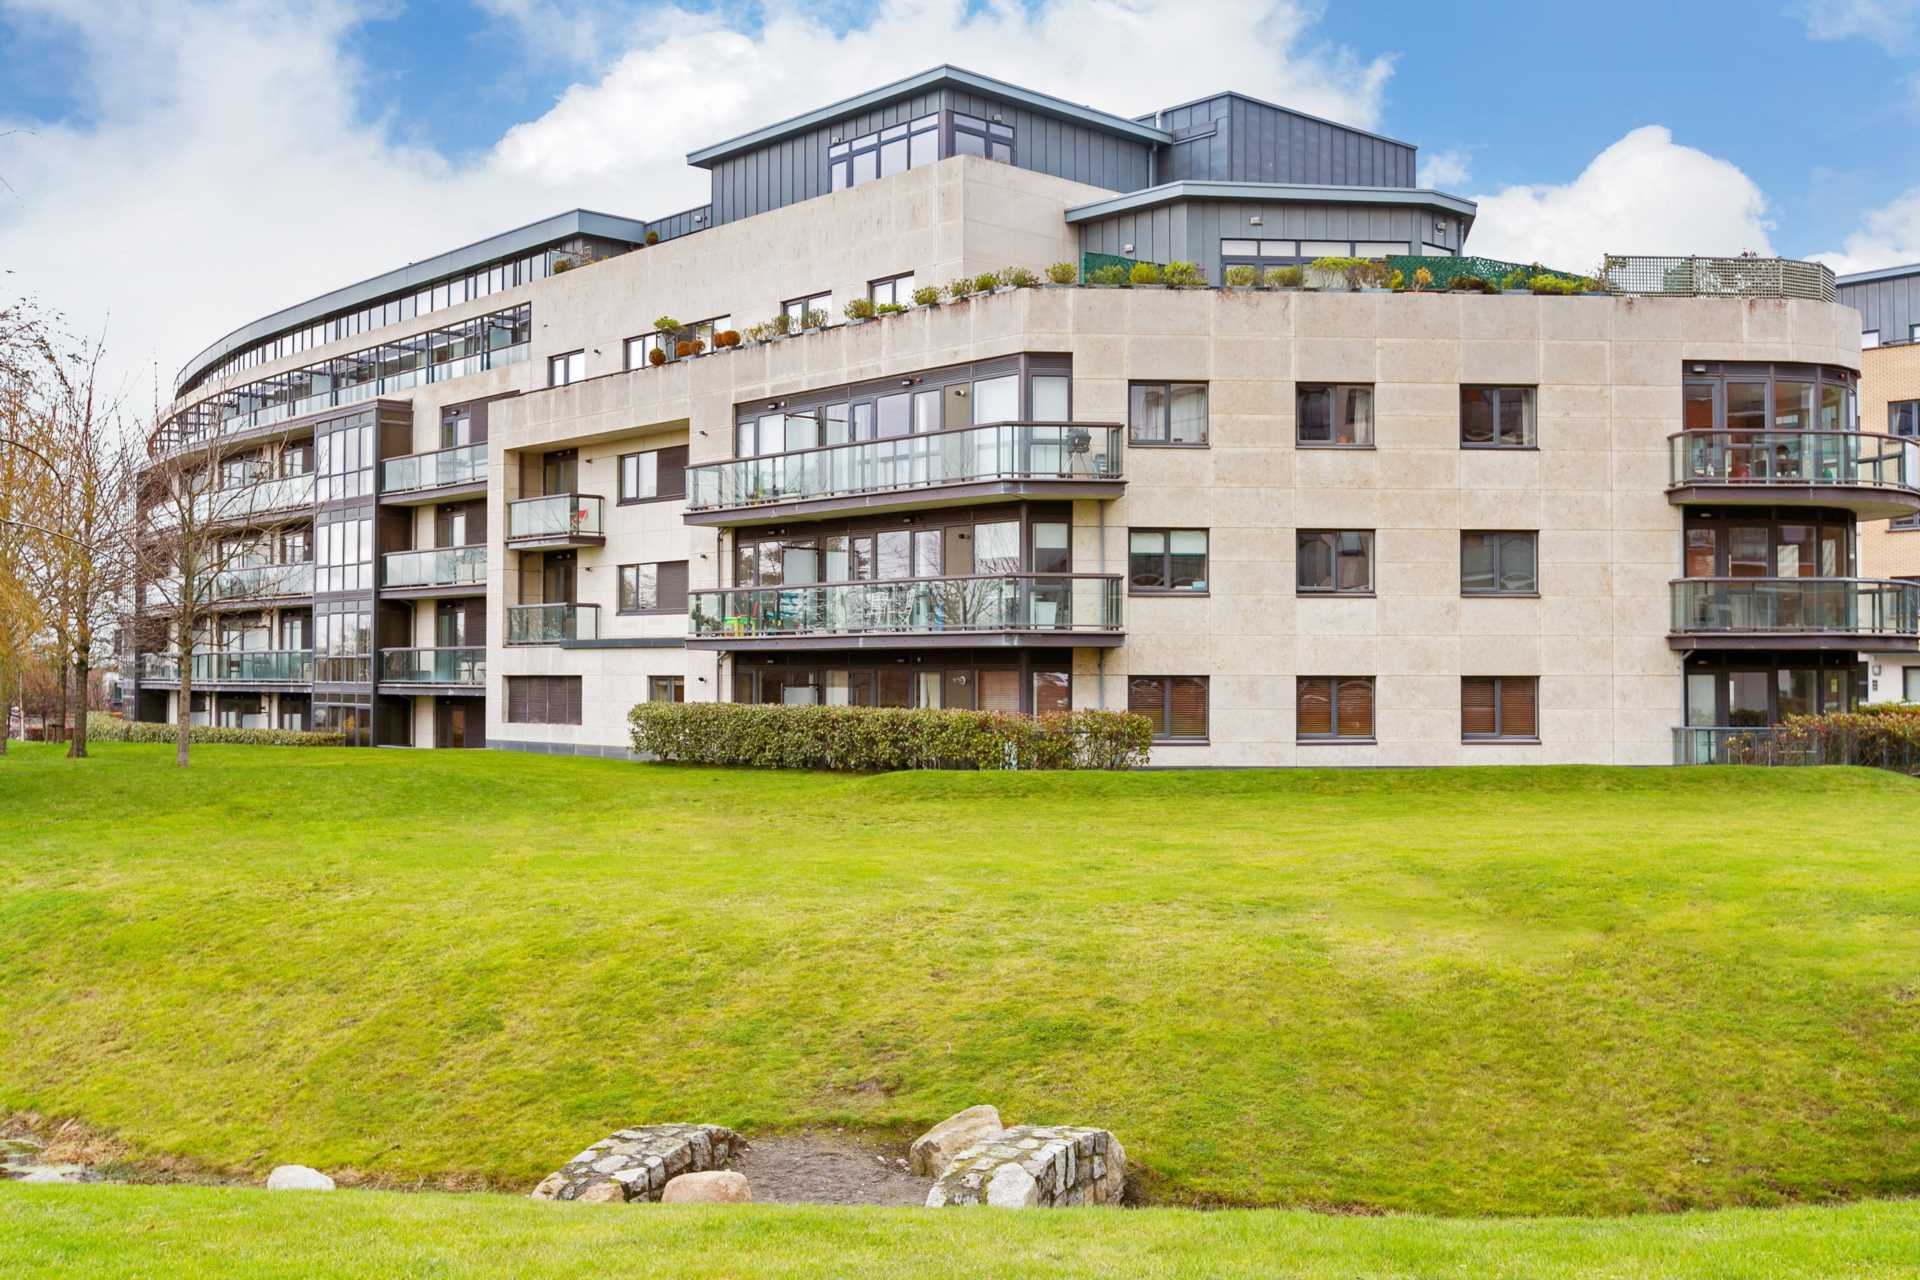 291 Wyckham Point, Dundrum, Dublin 16, Image 11